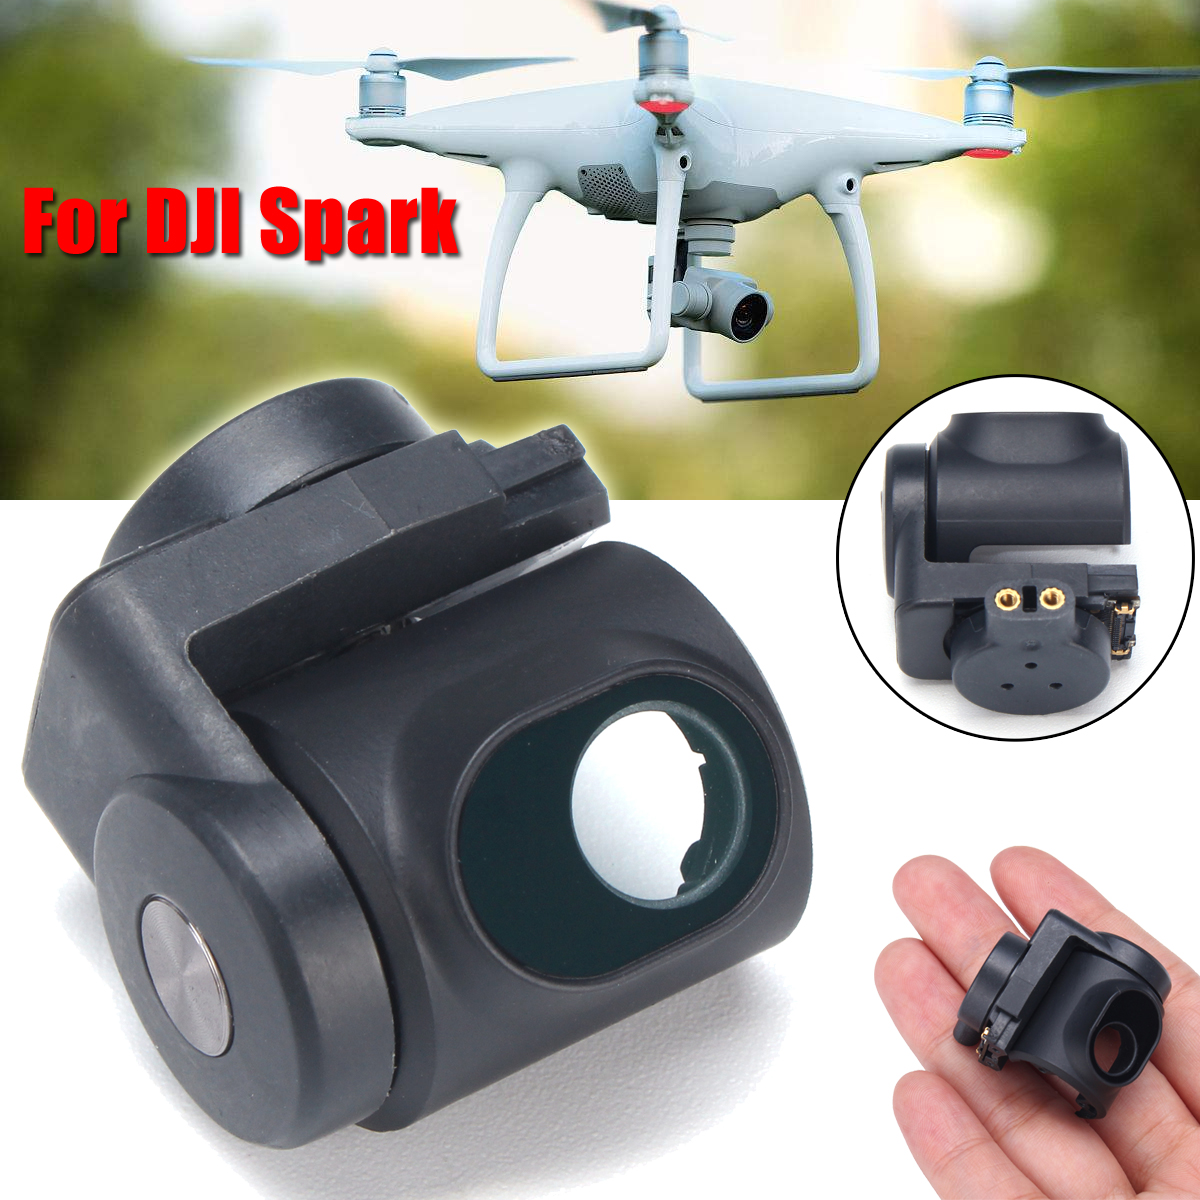 Gimbal Motor Axle Arm Spare Part Repair Replace for DJI Spark Drone RC New